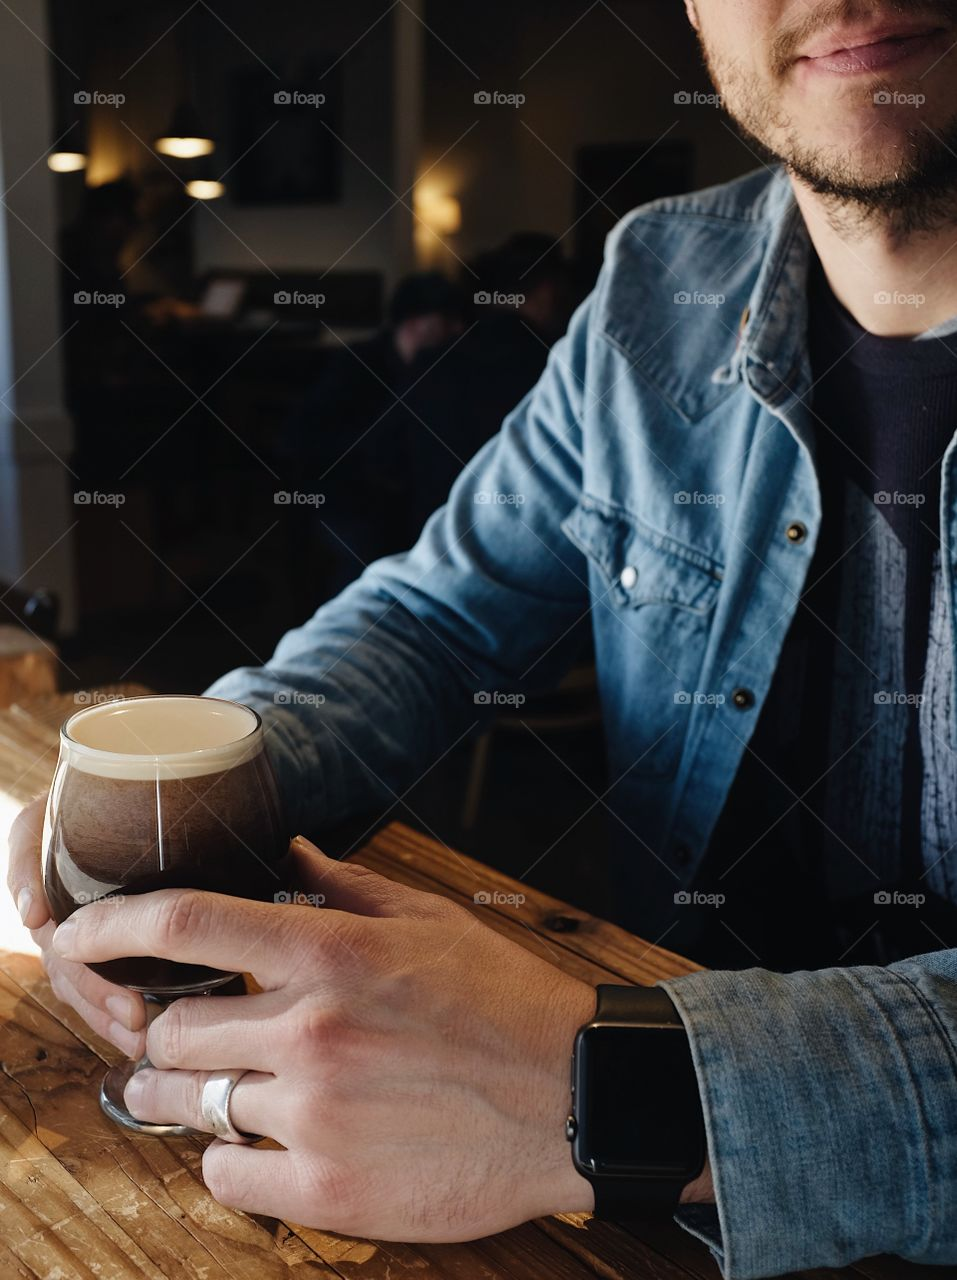 A married man sitting in a window enjoying a nitro cold brew coffee. He is wearing an Apple Watch, a Jean jacket, and a wedding ring on his finger.